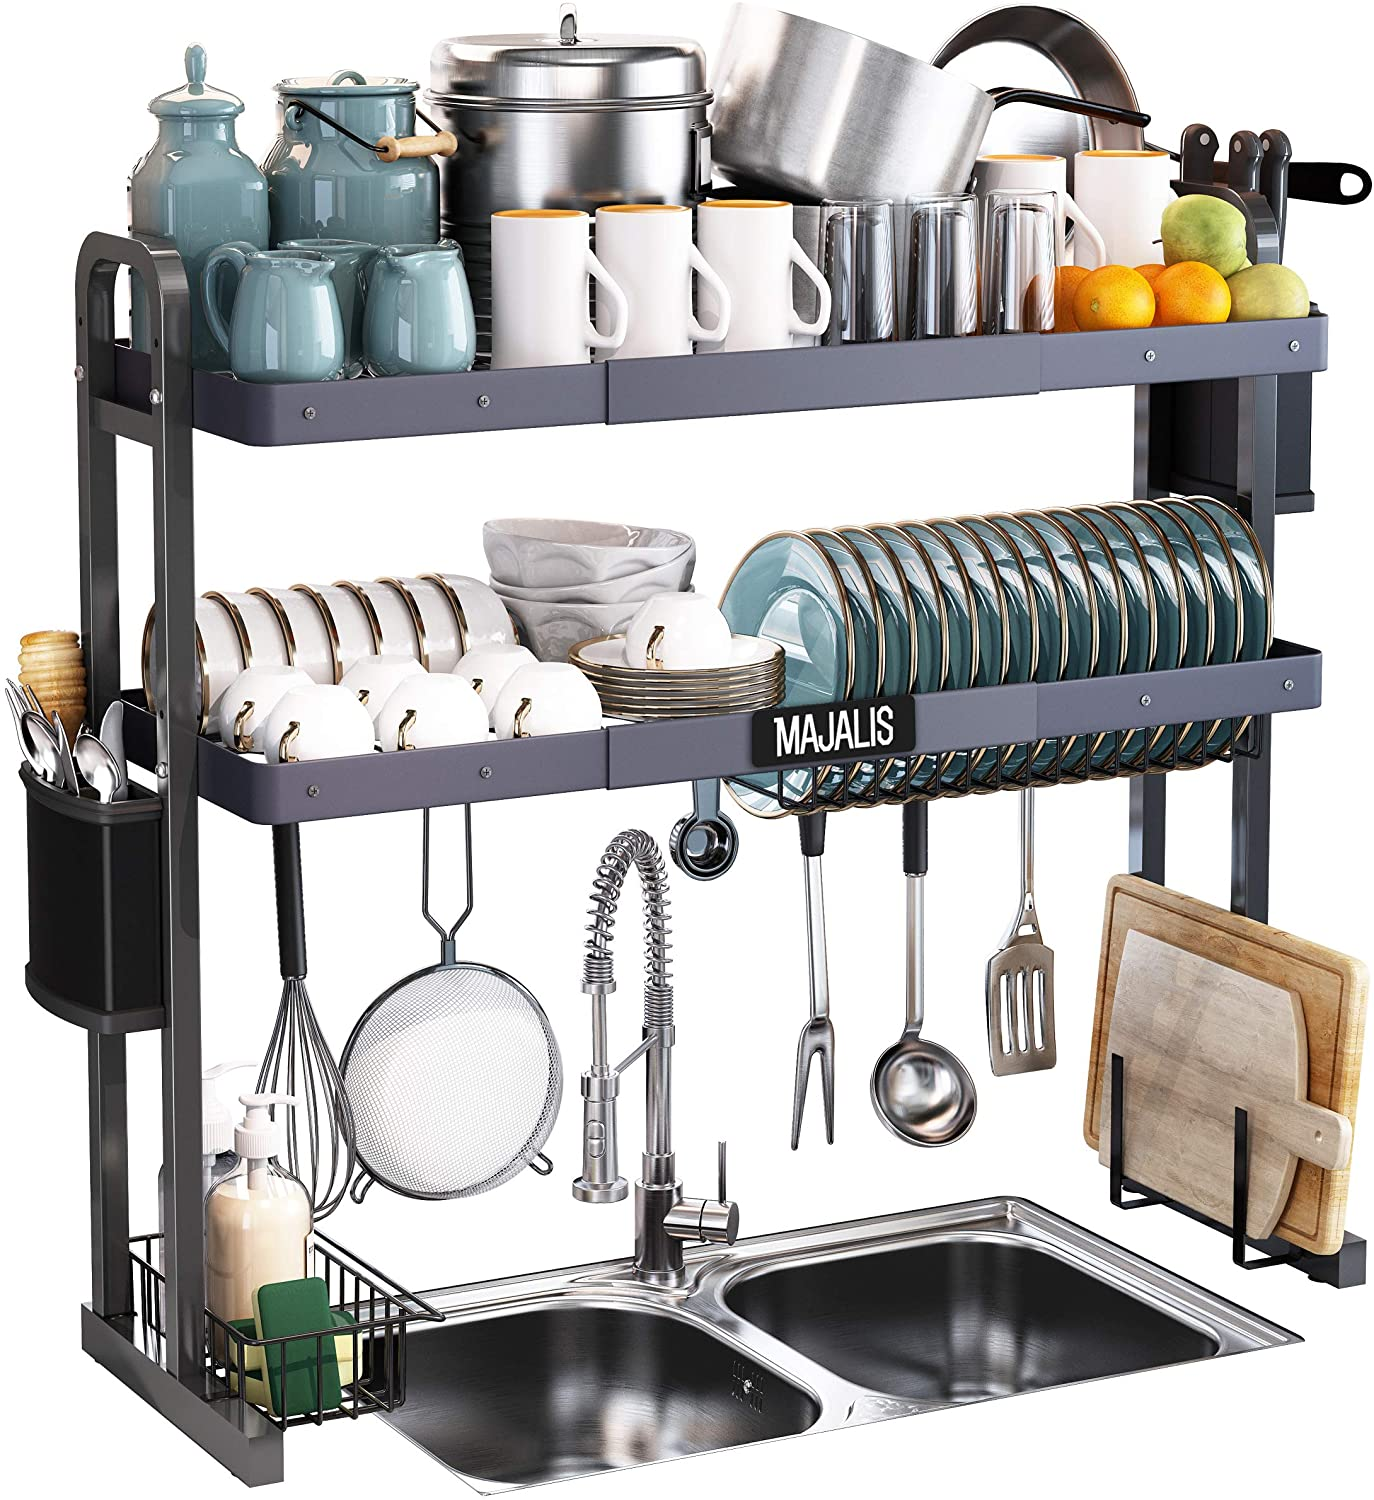 Over The Sink Dish Drying Rack Majalis Stainless Steel 2 Tier Large Dish Drainer Above Sink Adjustable 27 5 33 5 Expandable Kitchen Counter Organizer Storage Space Saver Shelf With 6 Hooks